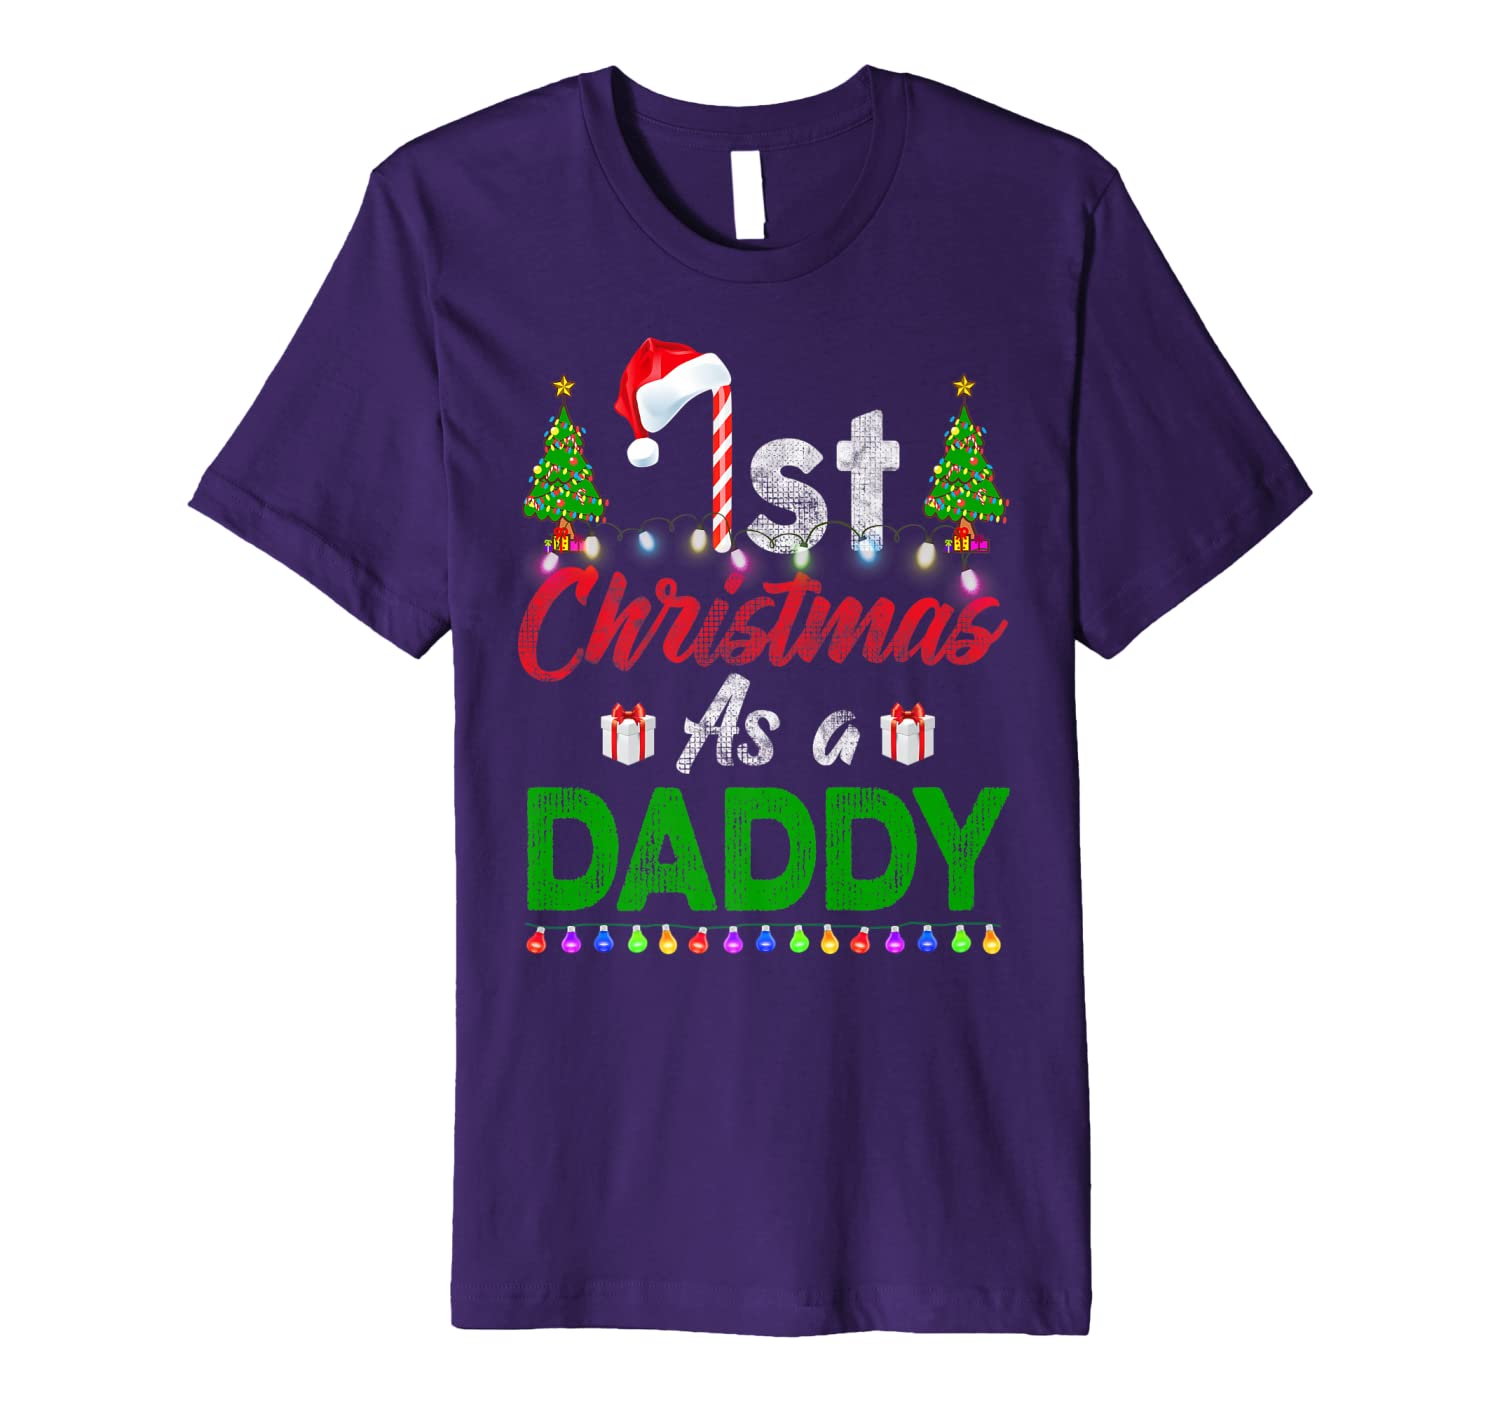 1st Christmas As a Daddy Matching Family Xmas Gifts Funny Premium T-Shirt